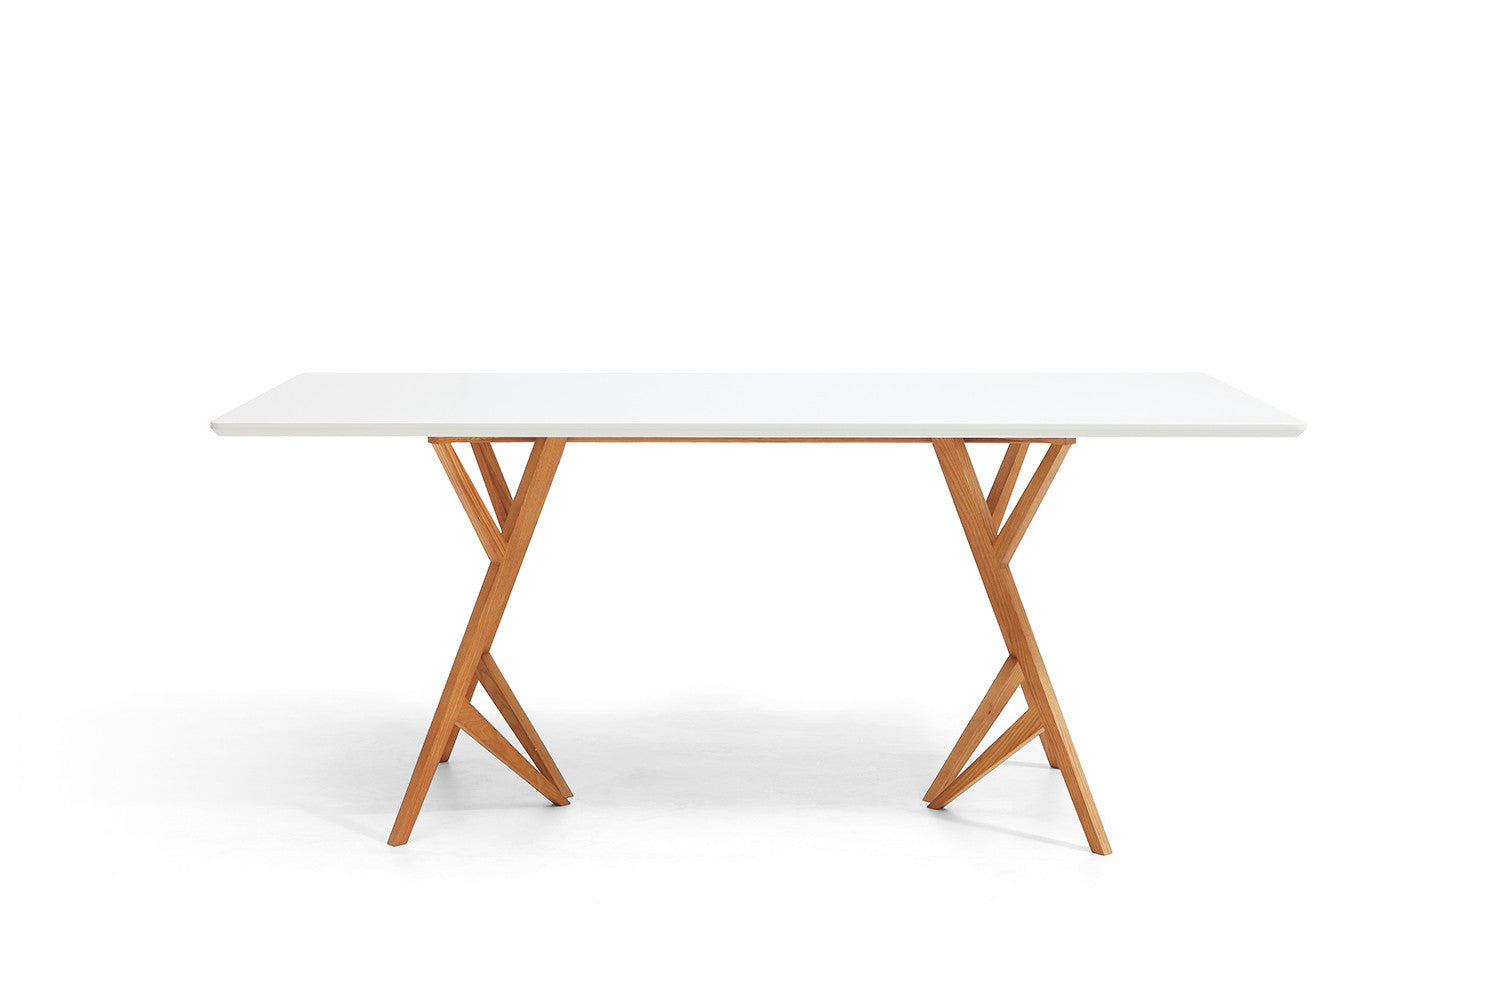 table de salle manger design scandinave vispa dewarens On table salle a manger design bois